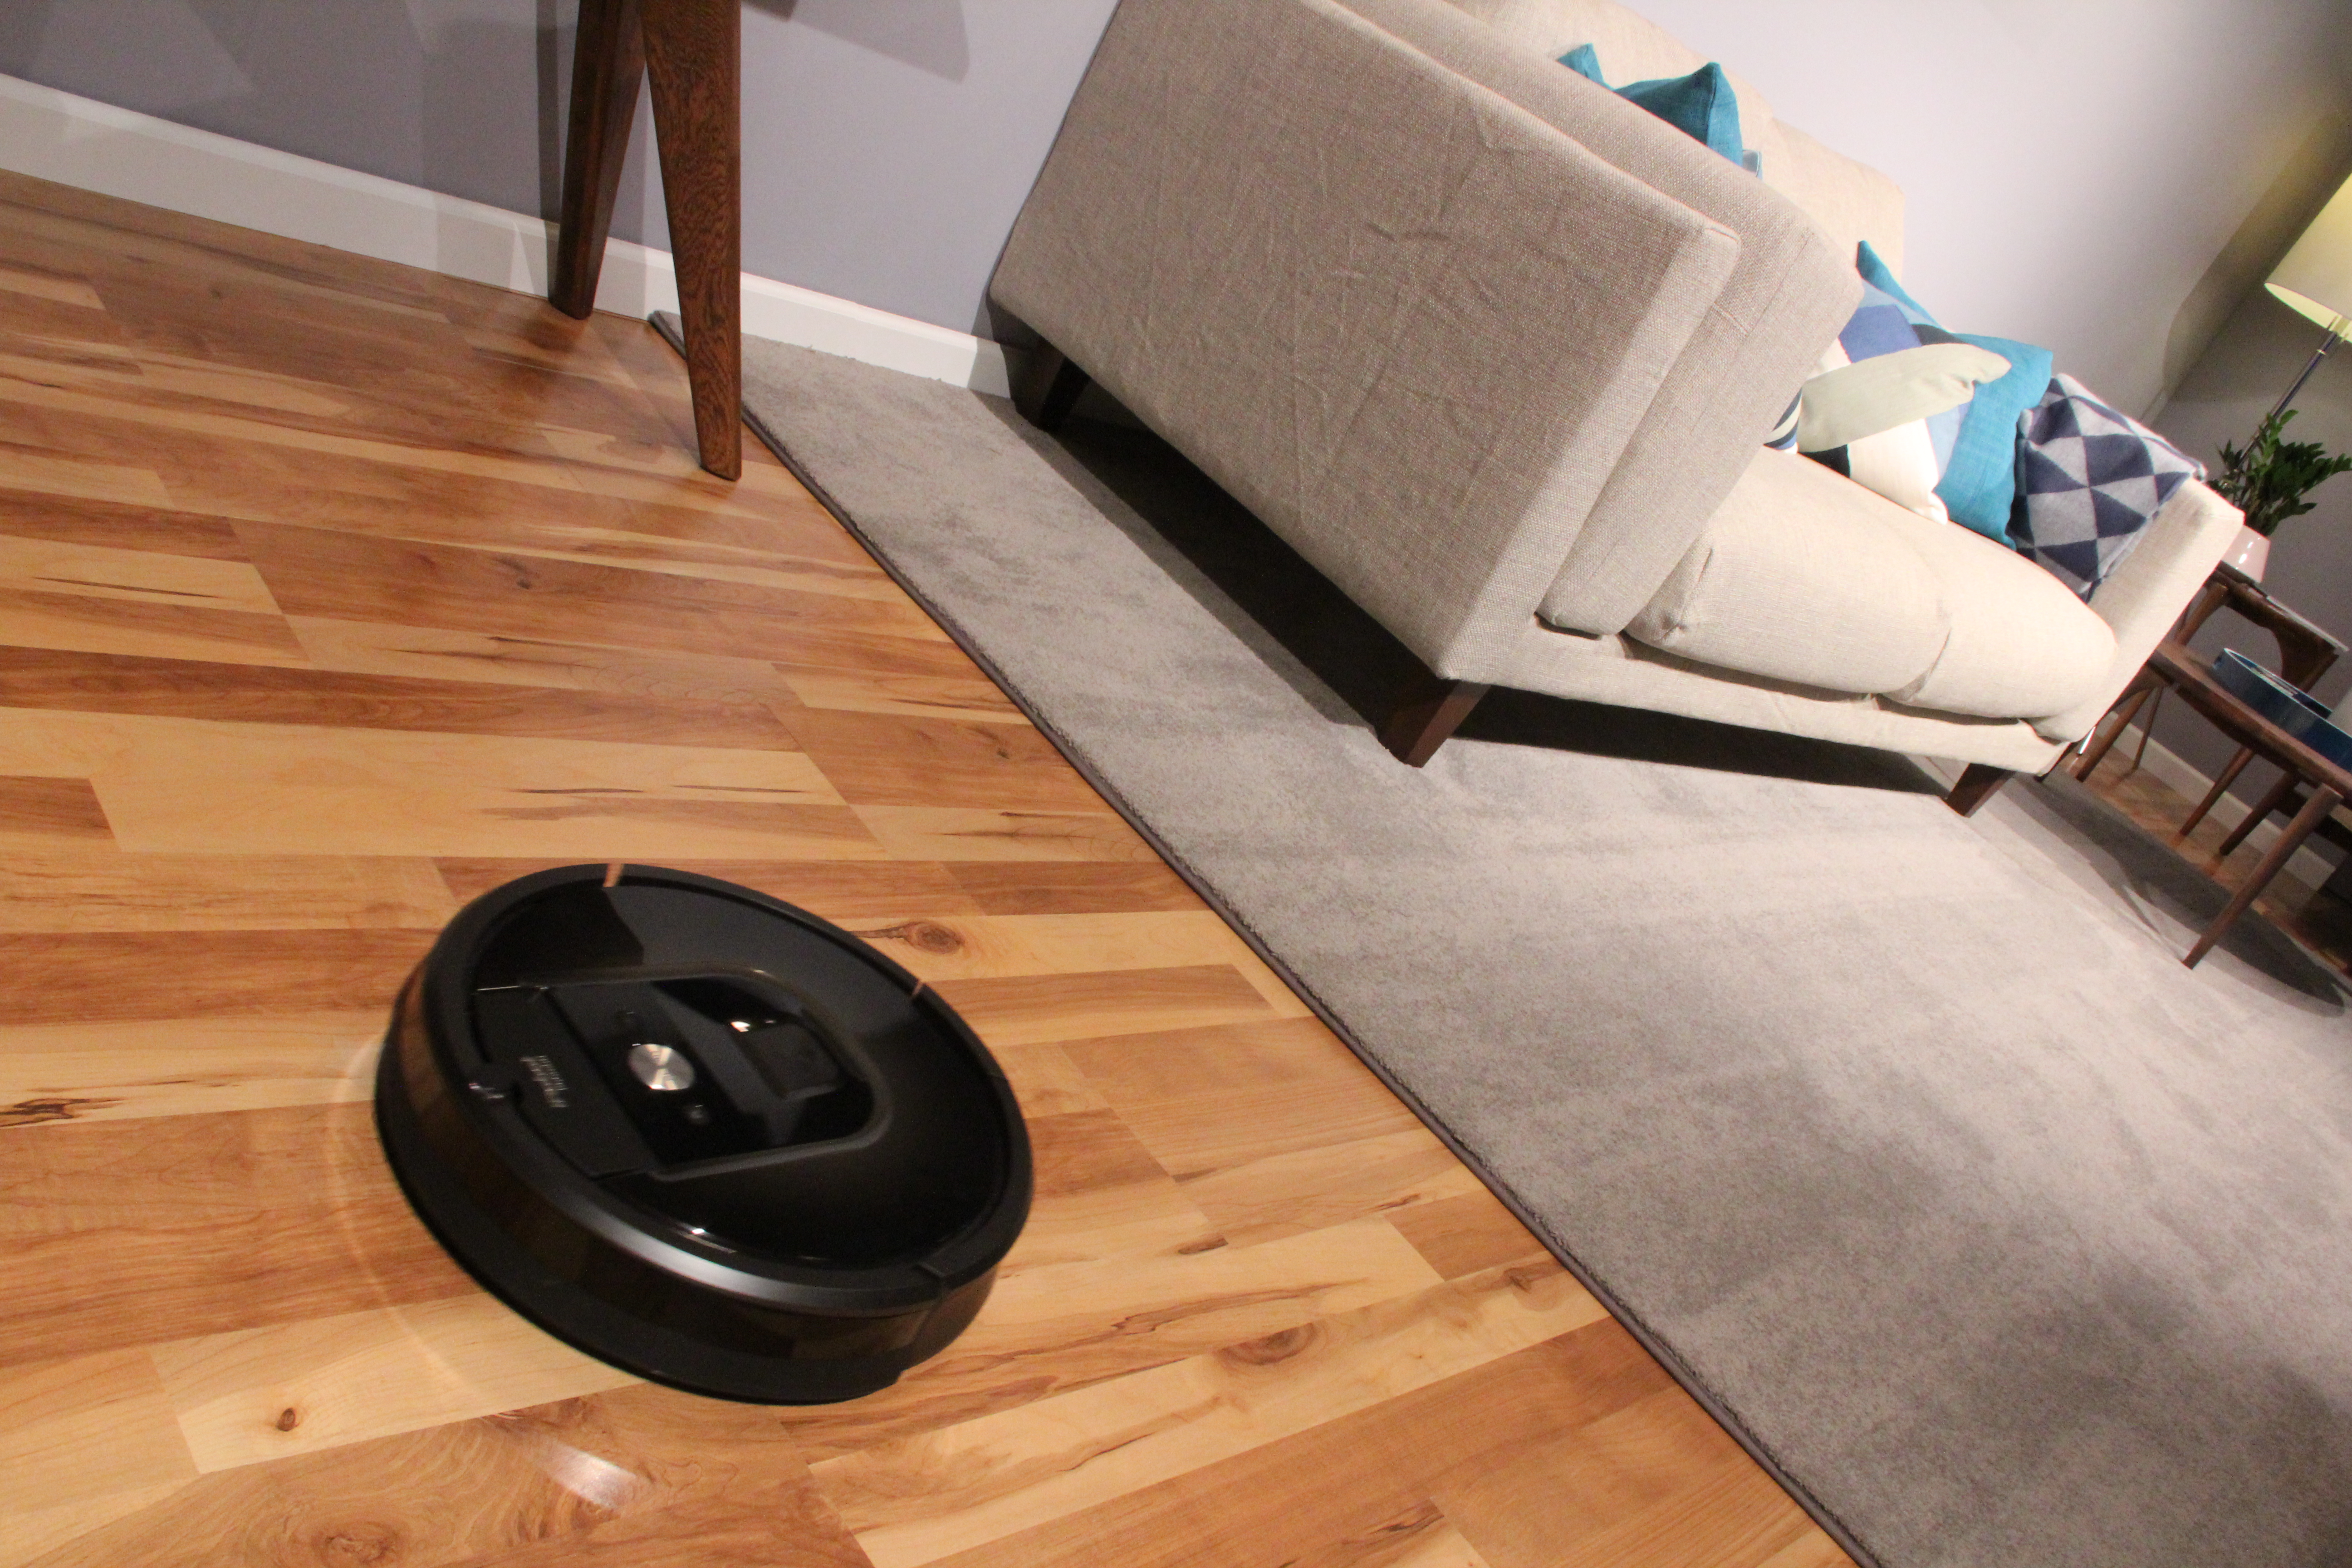 Roomba Poop Story Goes Viral After Vacuum Cleaner Goes ...